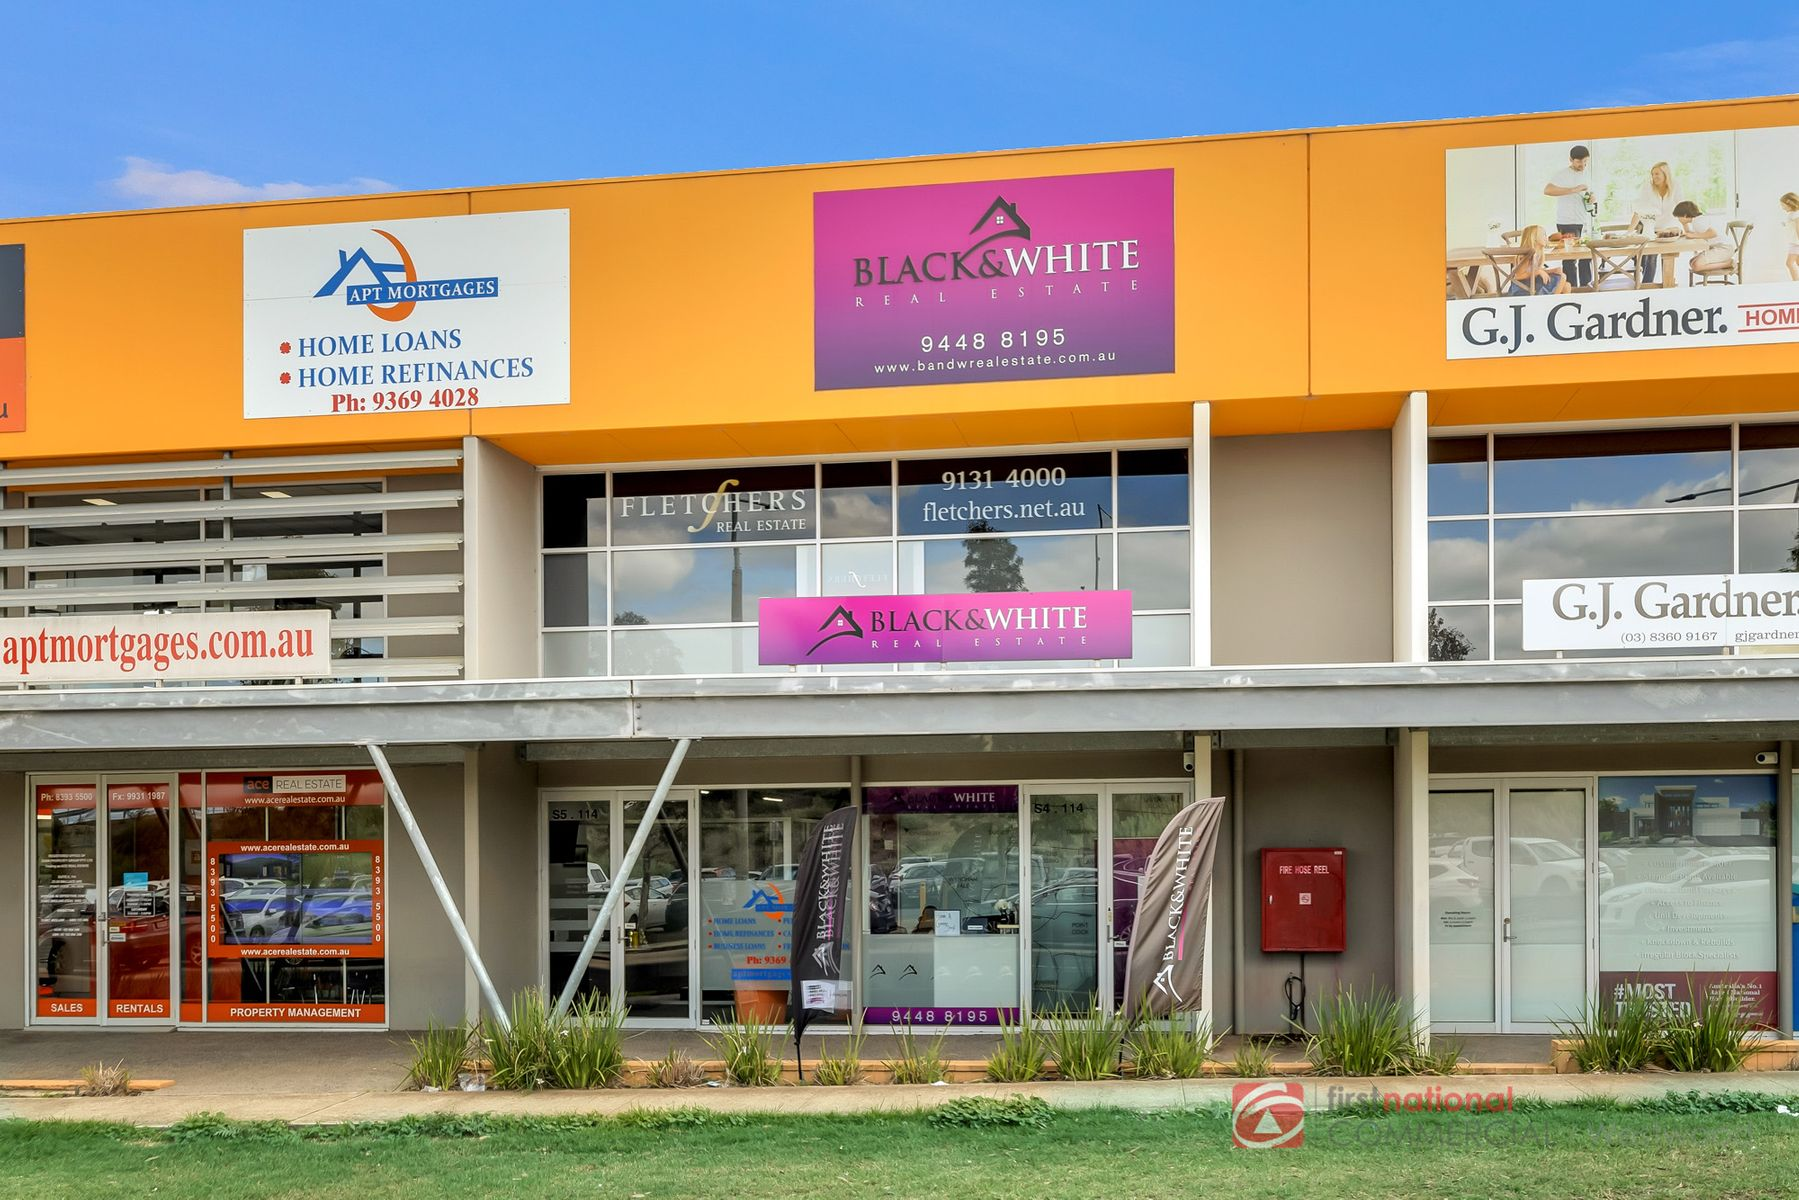 Suite 4, 114c/22-30 Wallace Avenue, Point Cook, VIC 3030